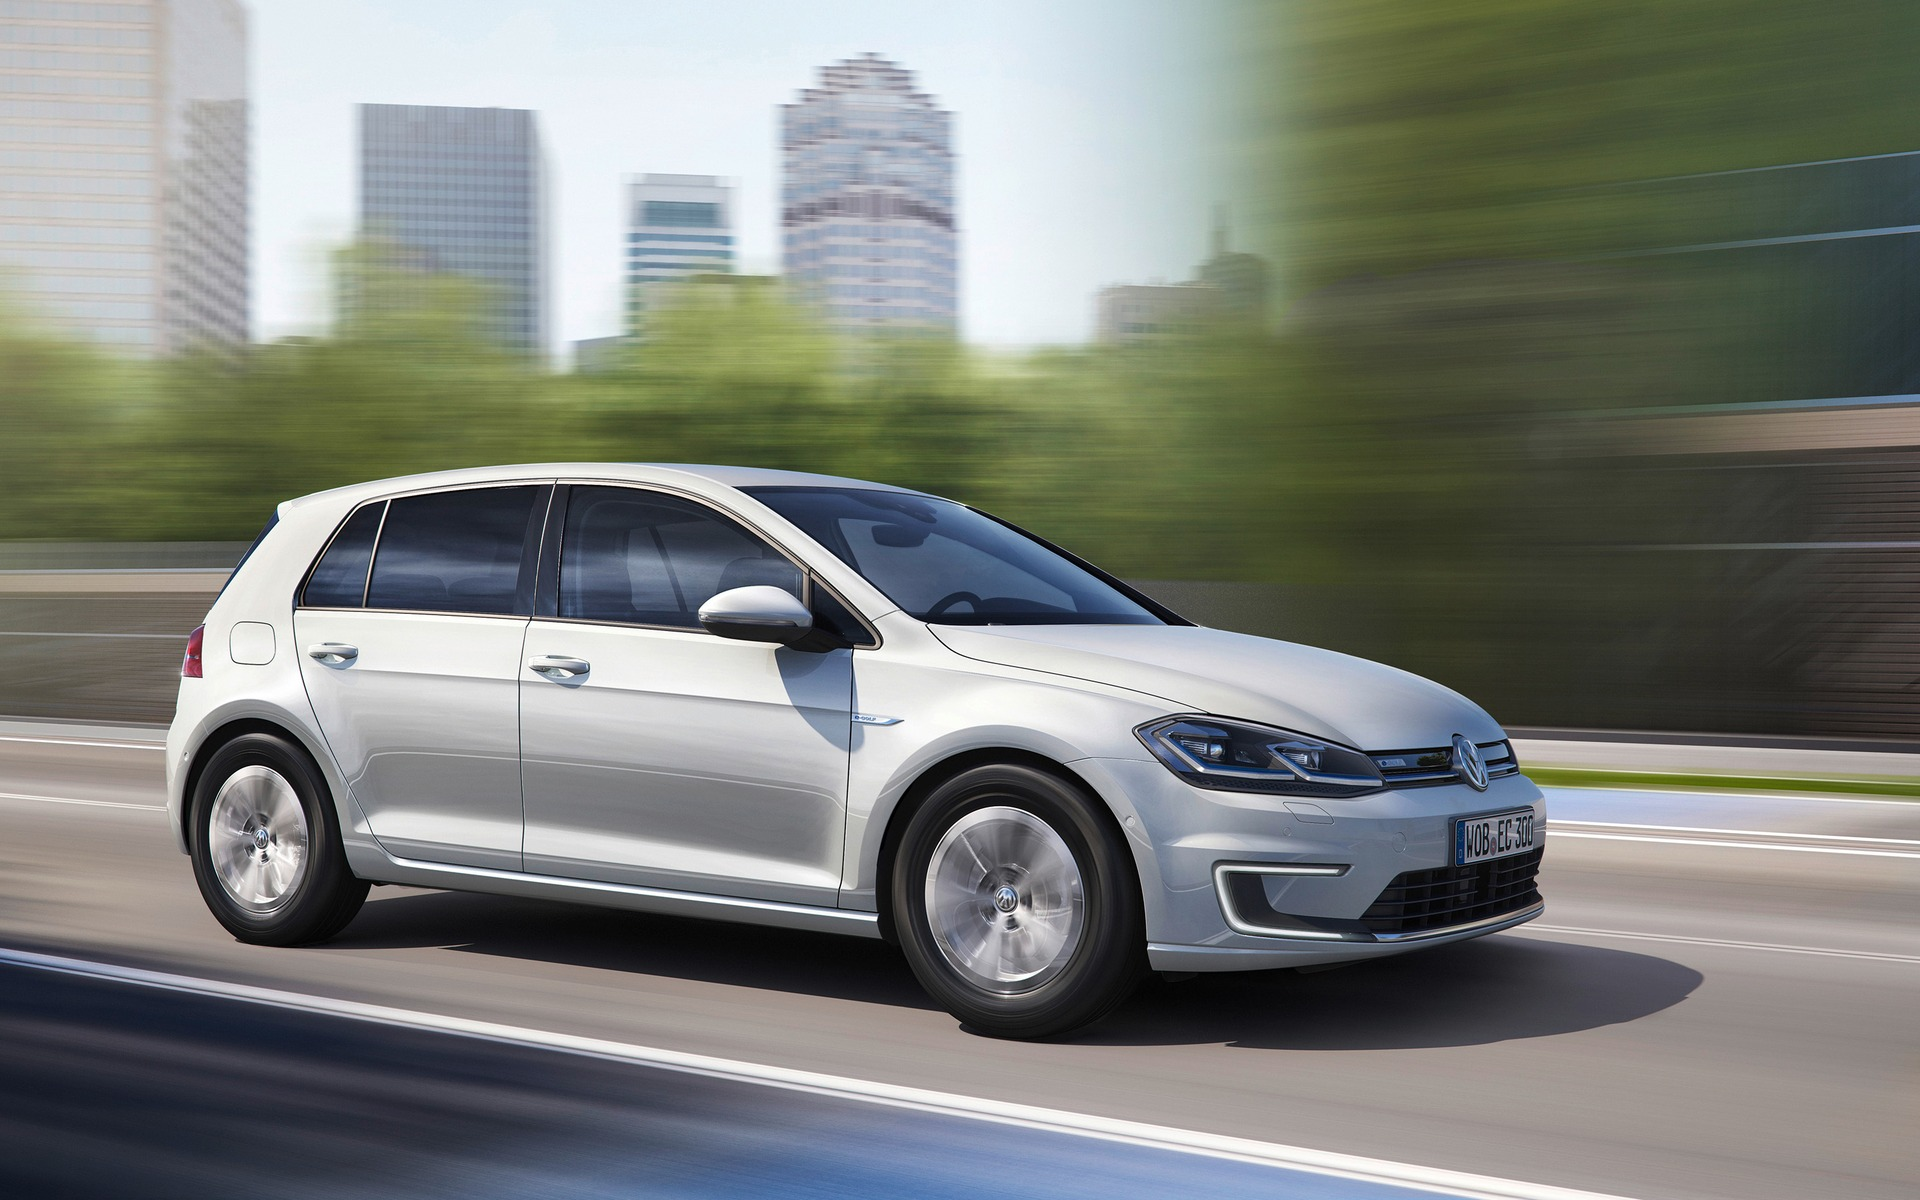 volkswagen e golf 2017 nous l essayons cette semaine guide auto. Black Bedroom Furniture Sets. Home Design Ideas